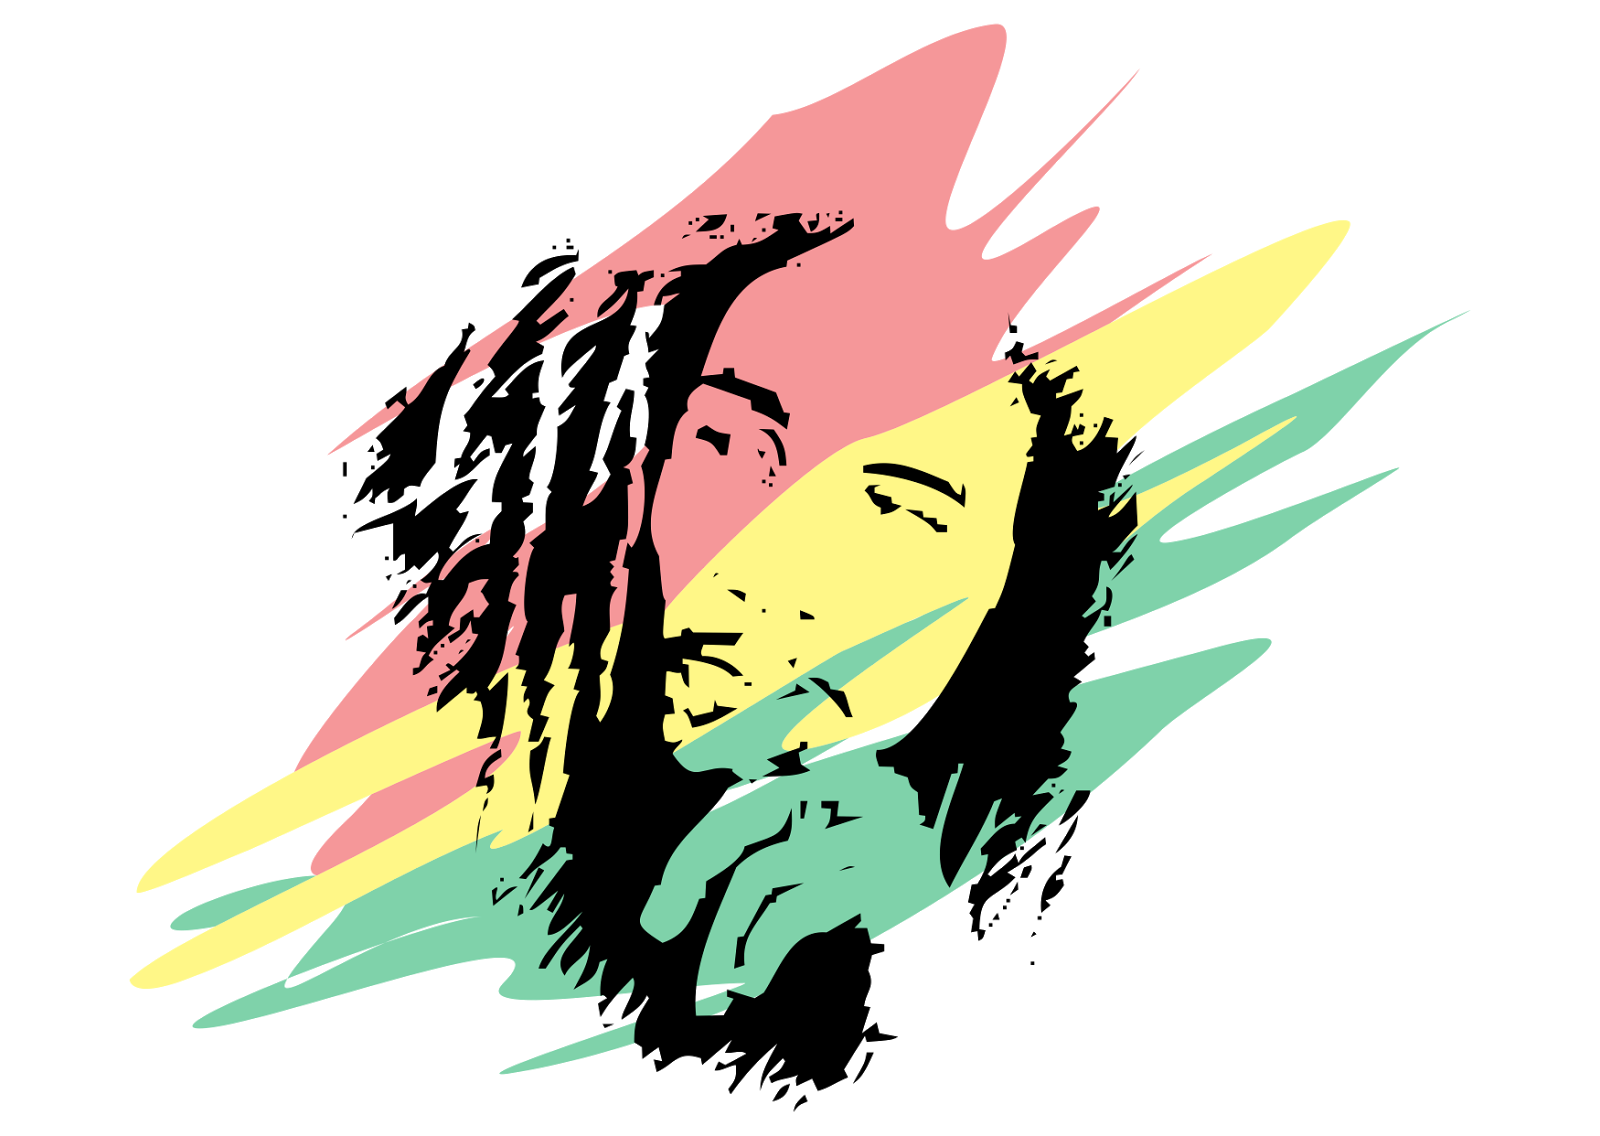 Download Bob Marley PNG HD For Designing Projects.